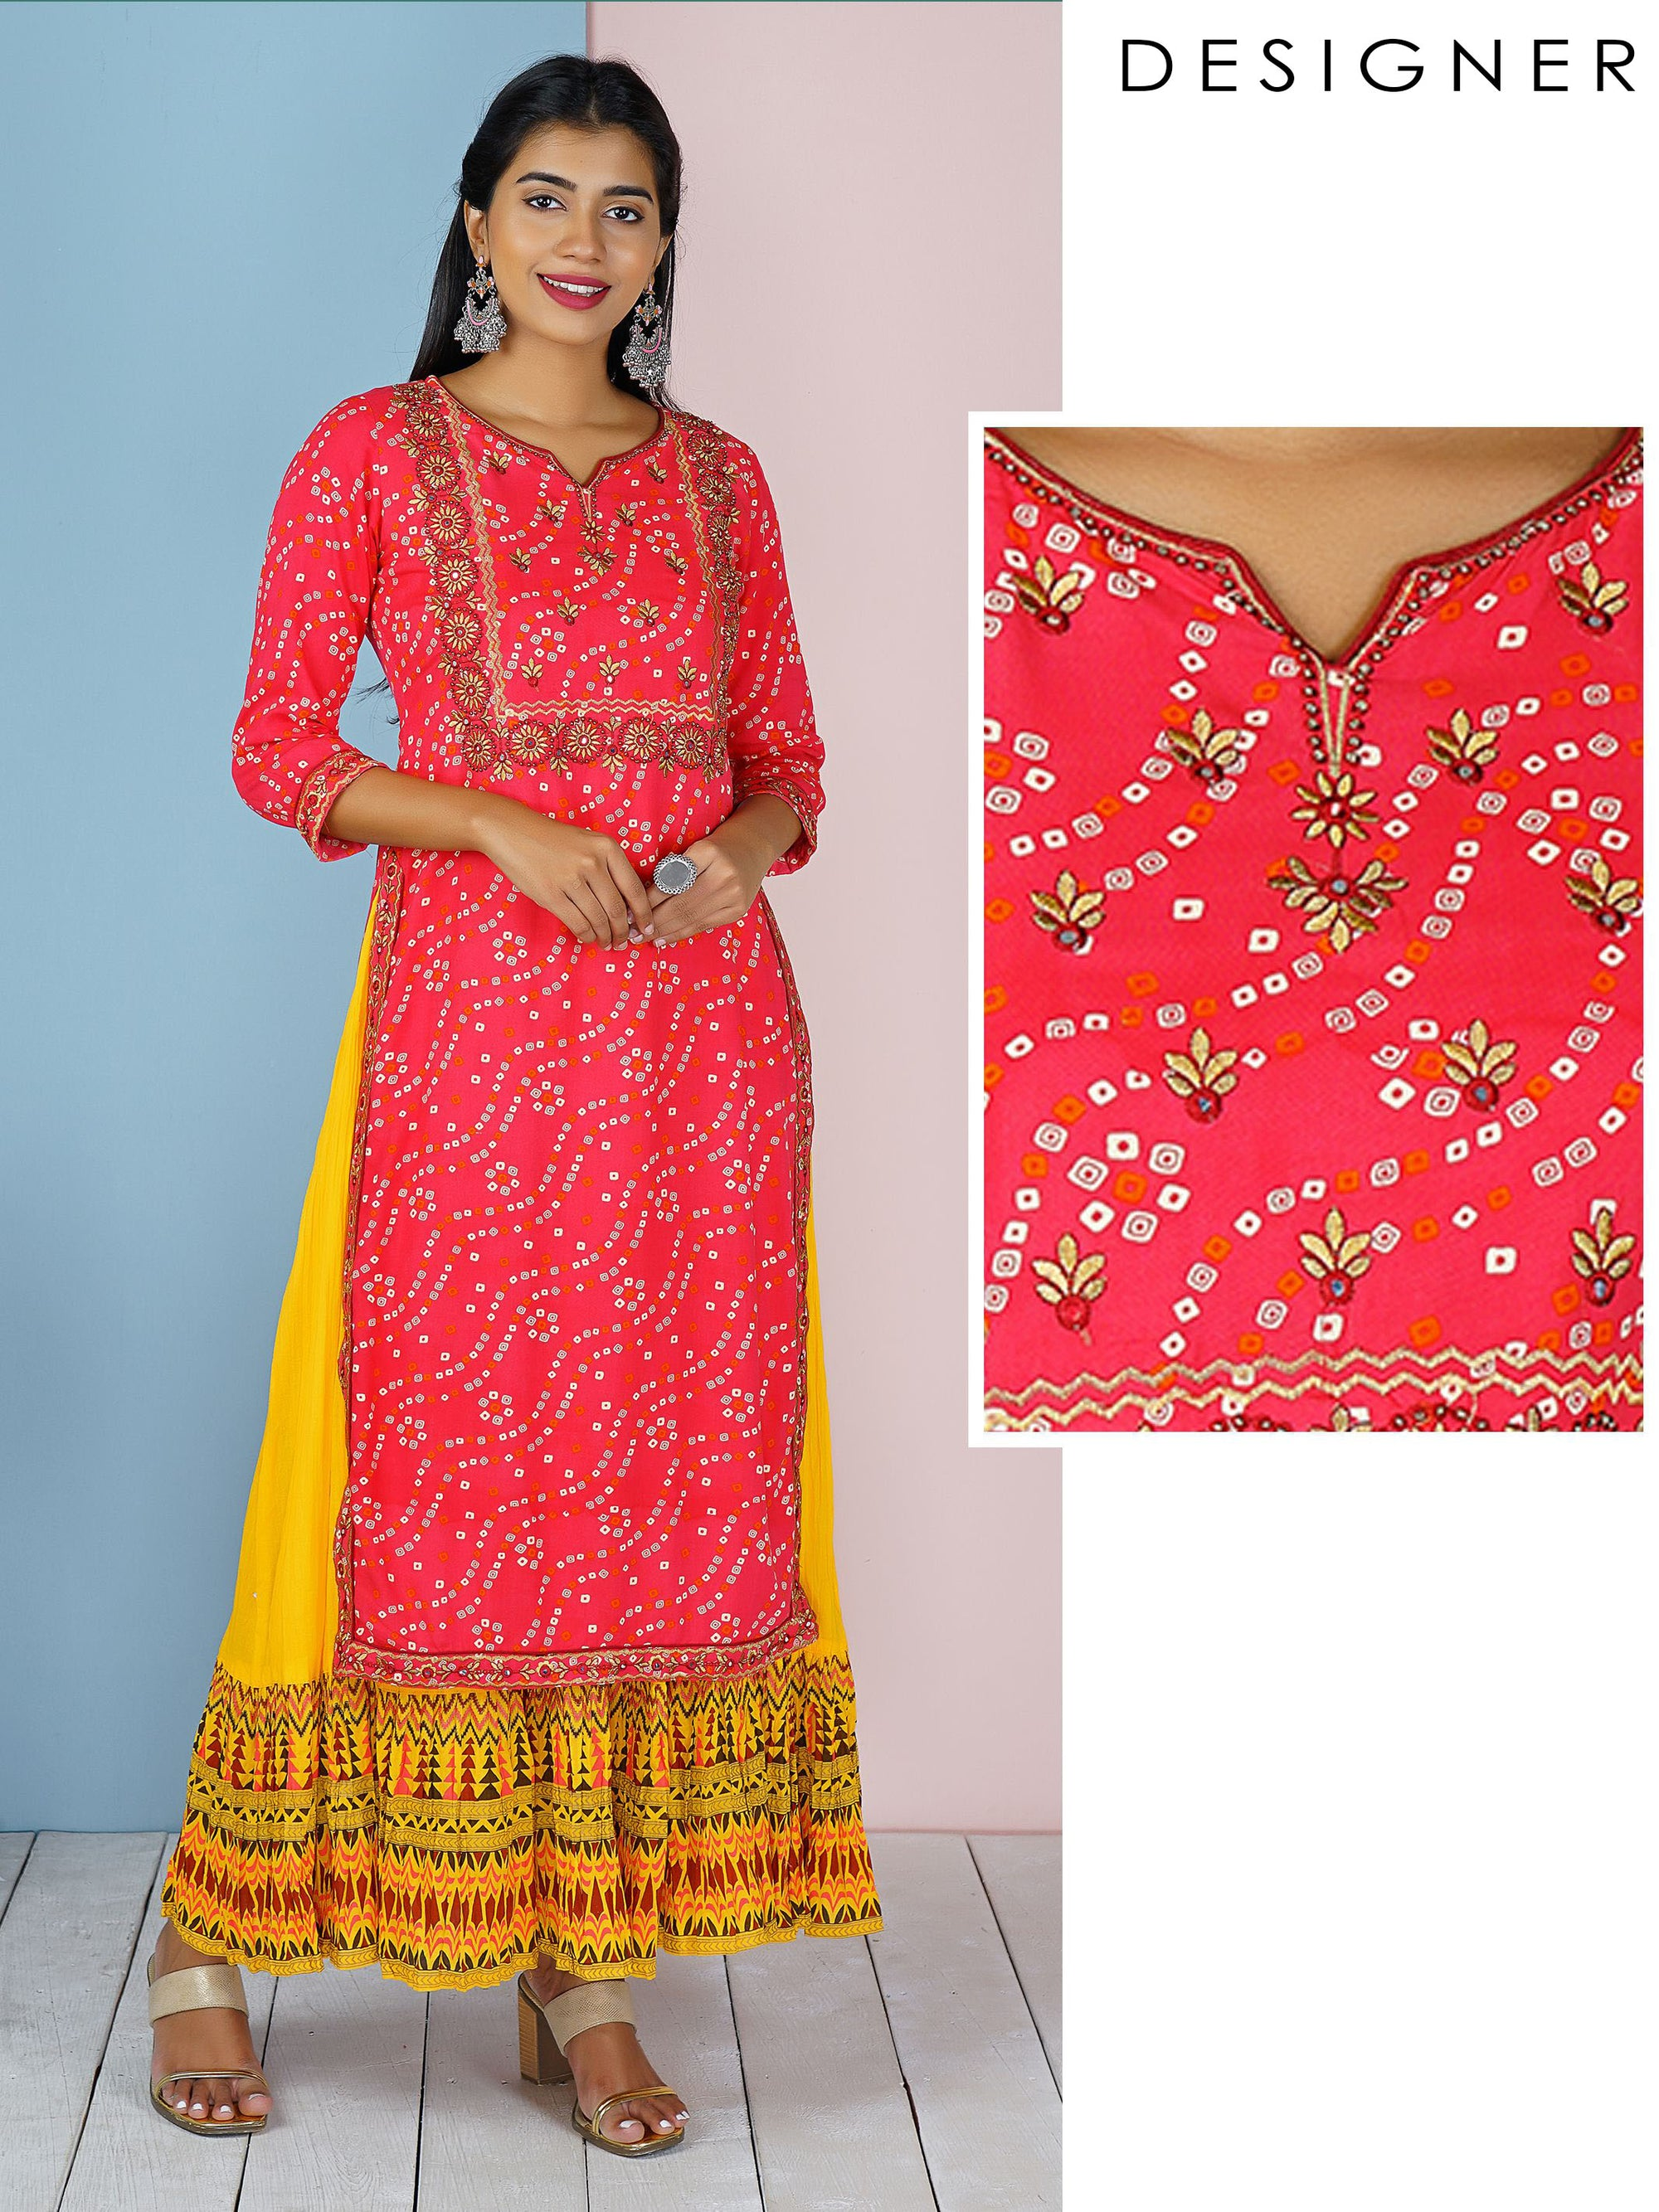 Floral Embroidered & Bandhani Printed Kurti with Attached Inner - Rani Pink